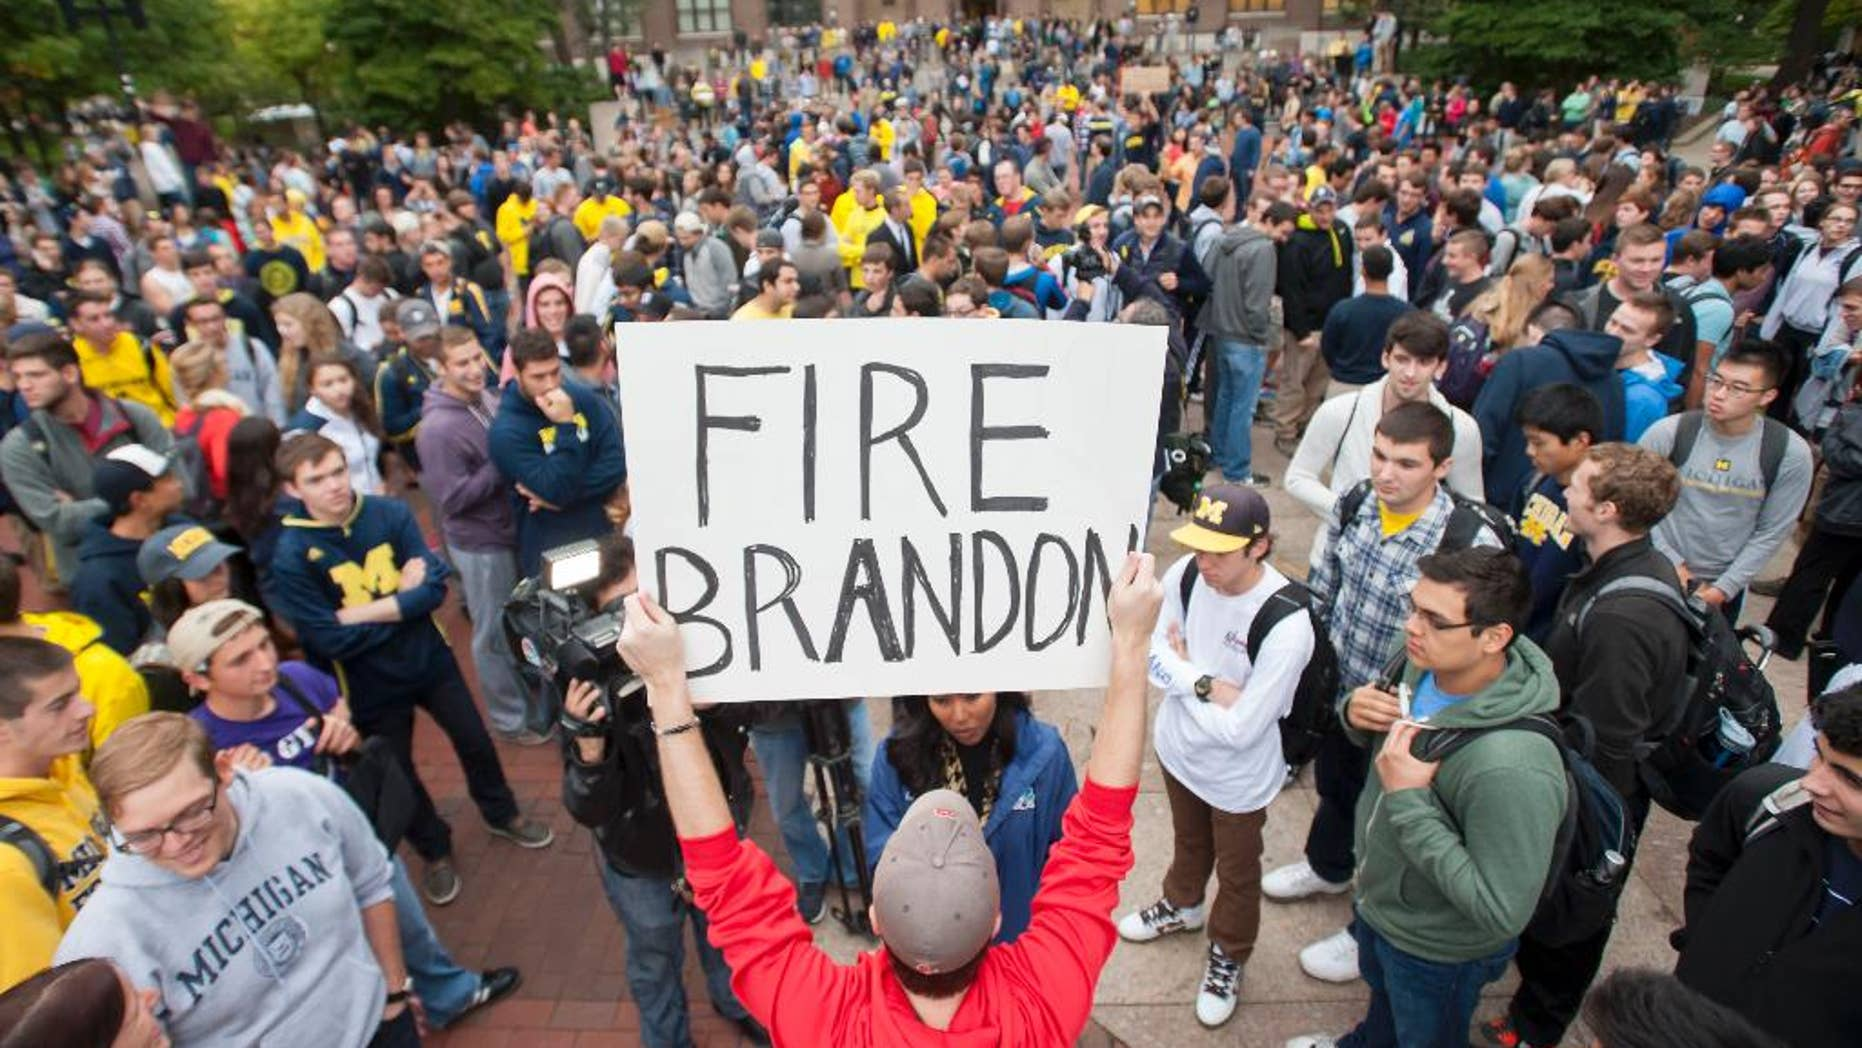 """In a Sept. 30, 2014 photo, law student Edward Mears holds a """"Fire Brandon"""" sign during a protest on the campus of the University of Michigan over the recent football game against Minnesota where quarterback Shane Morris was left in the game after receiving a concussion. About 1,000 University of Michigan students marched to the home of school President Mark Schlissel to protest against the performance of athletic director Dave Brandon and football coach Brady Hoke.  (AP Photo/The Detroit News, David Guralnick)"""